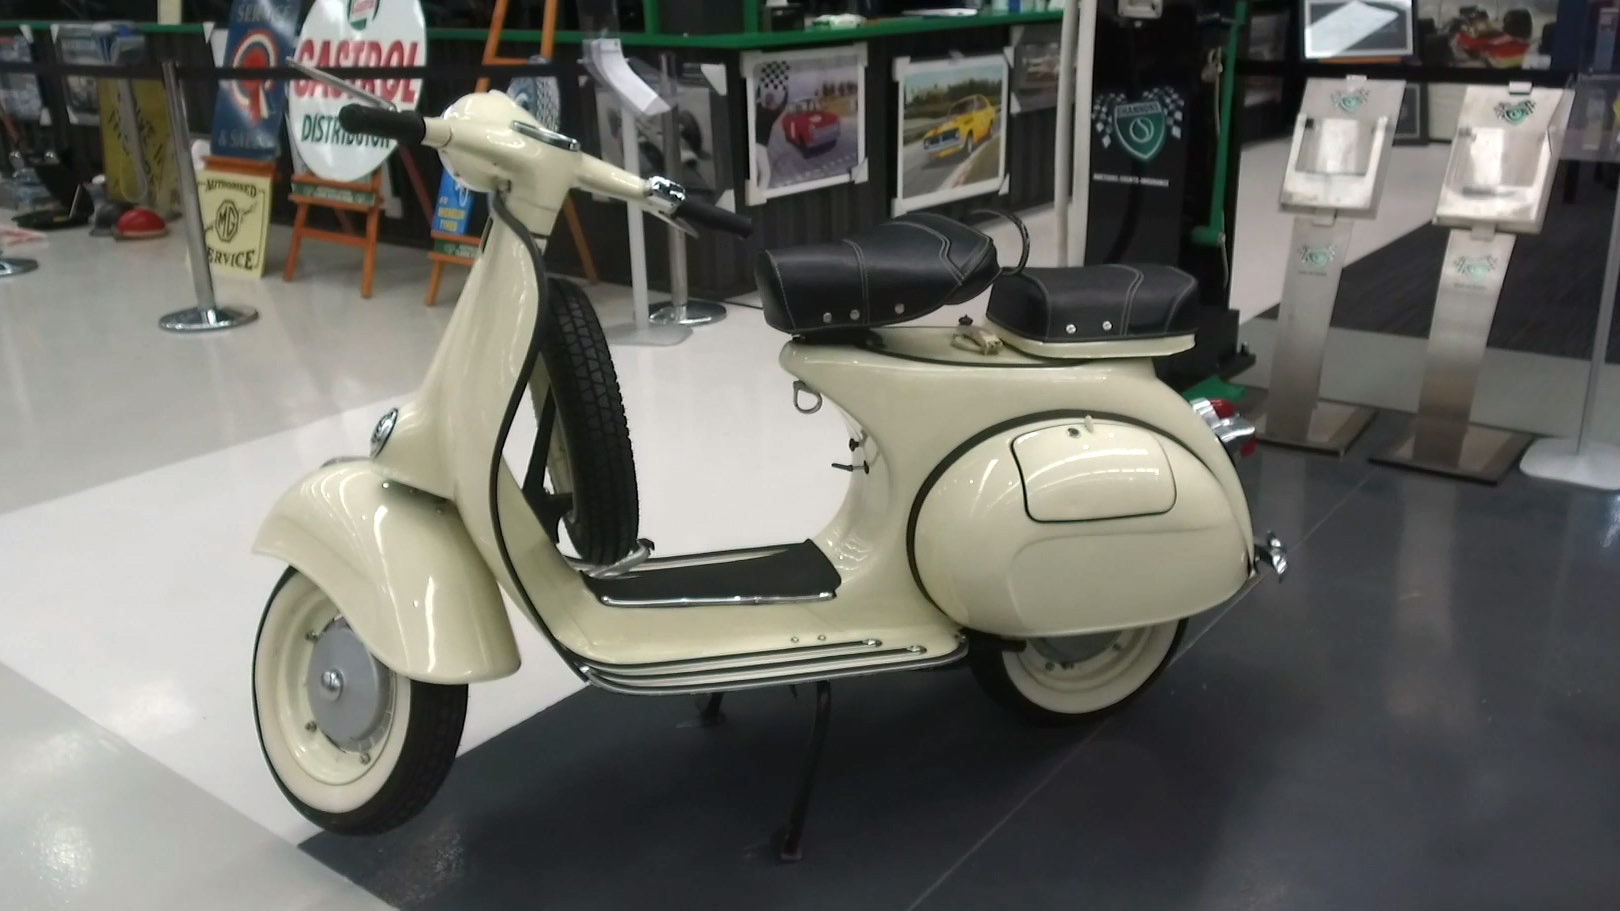 1961 Vespa Piaggio 150 Scooter - 2021 Shannons Summer Timed Online Auction